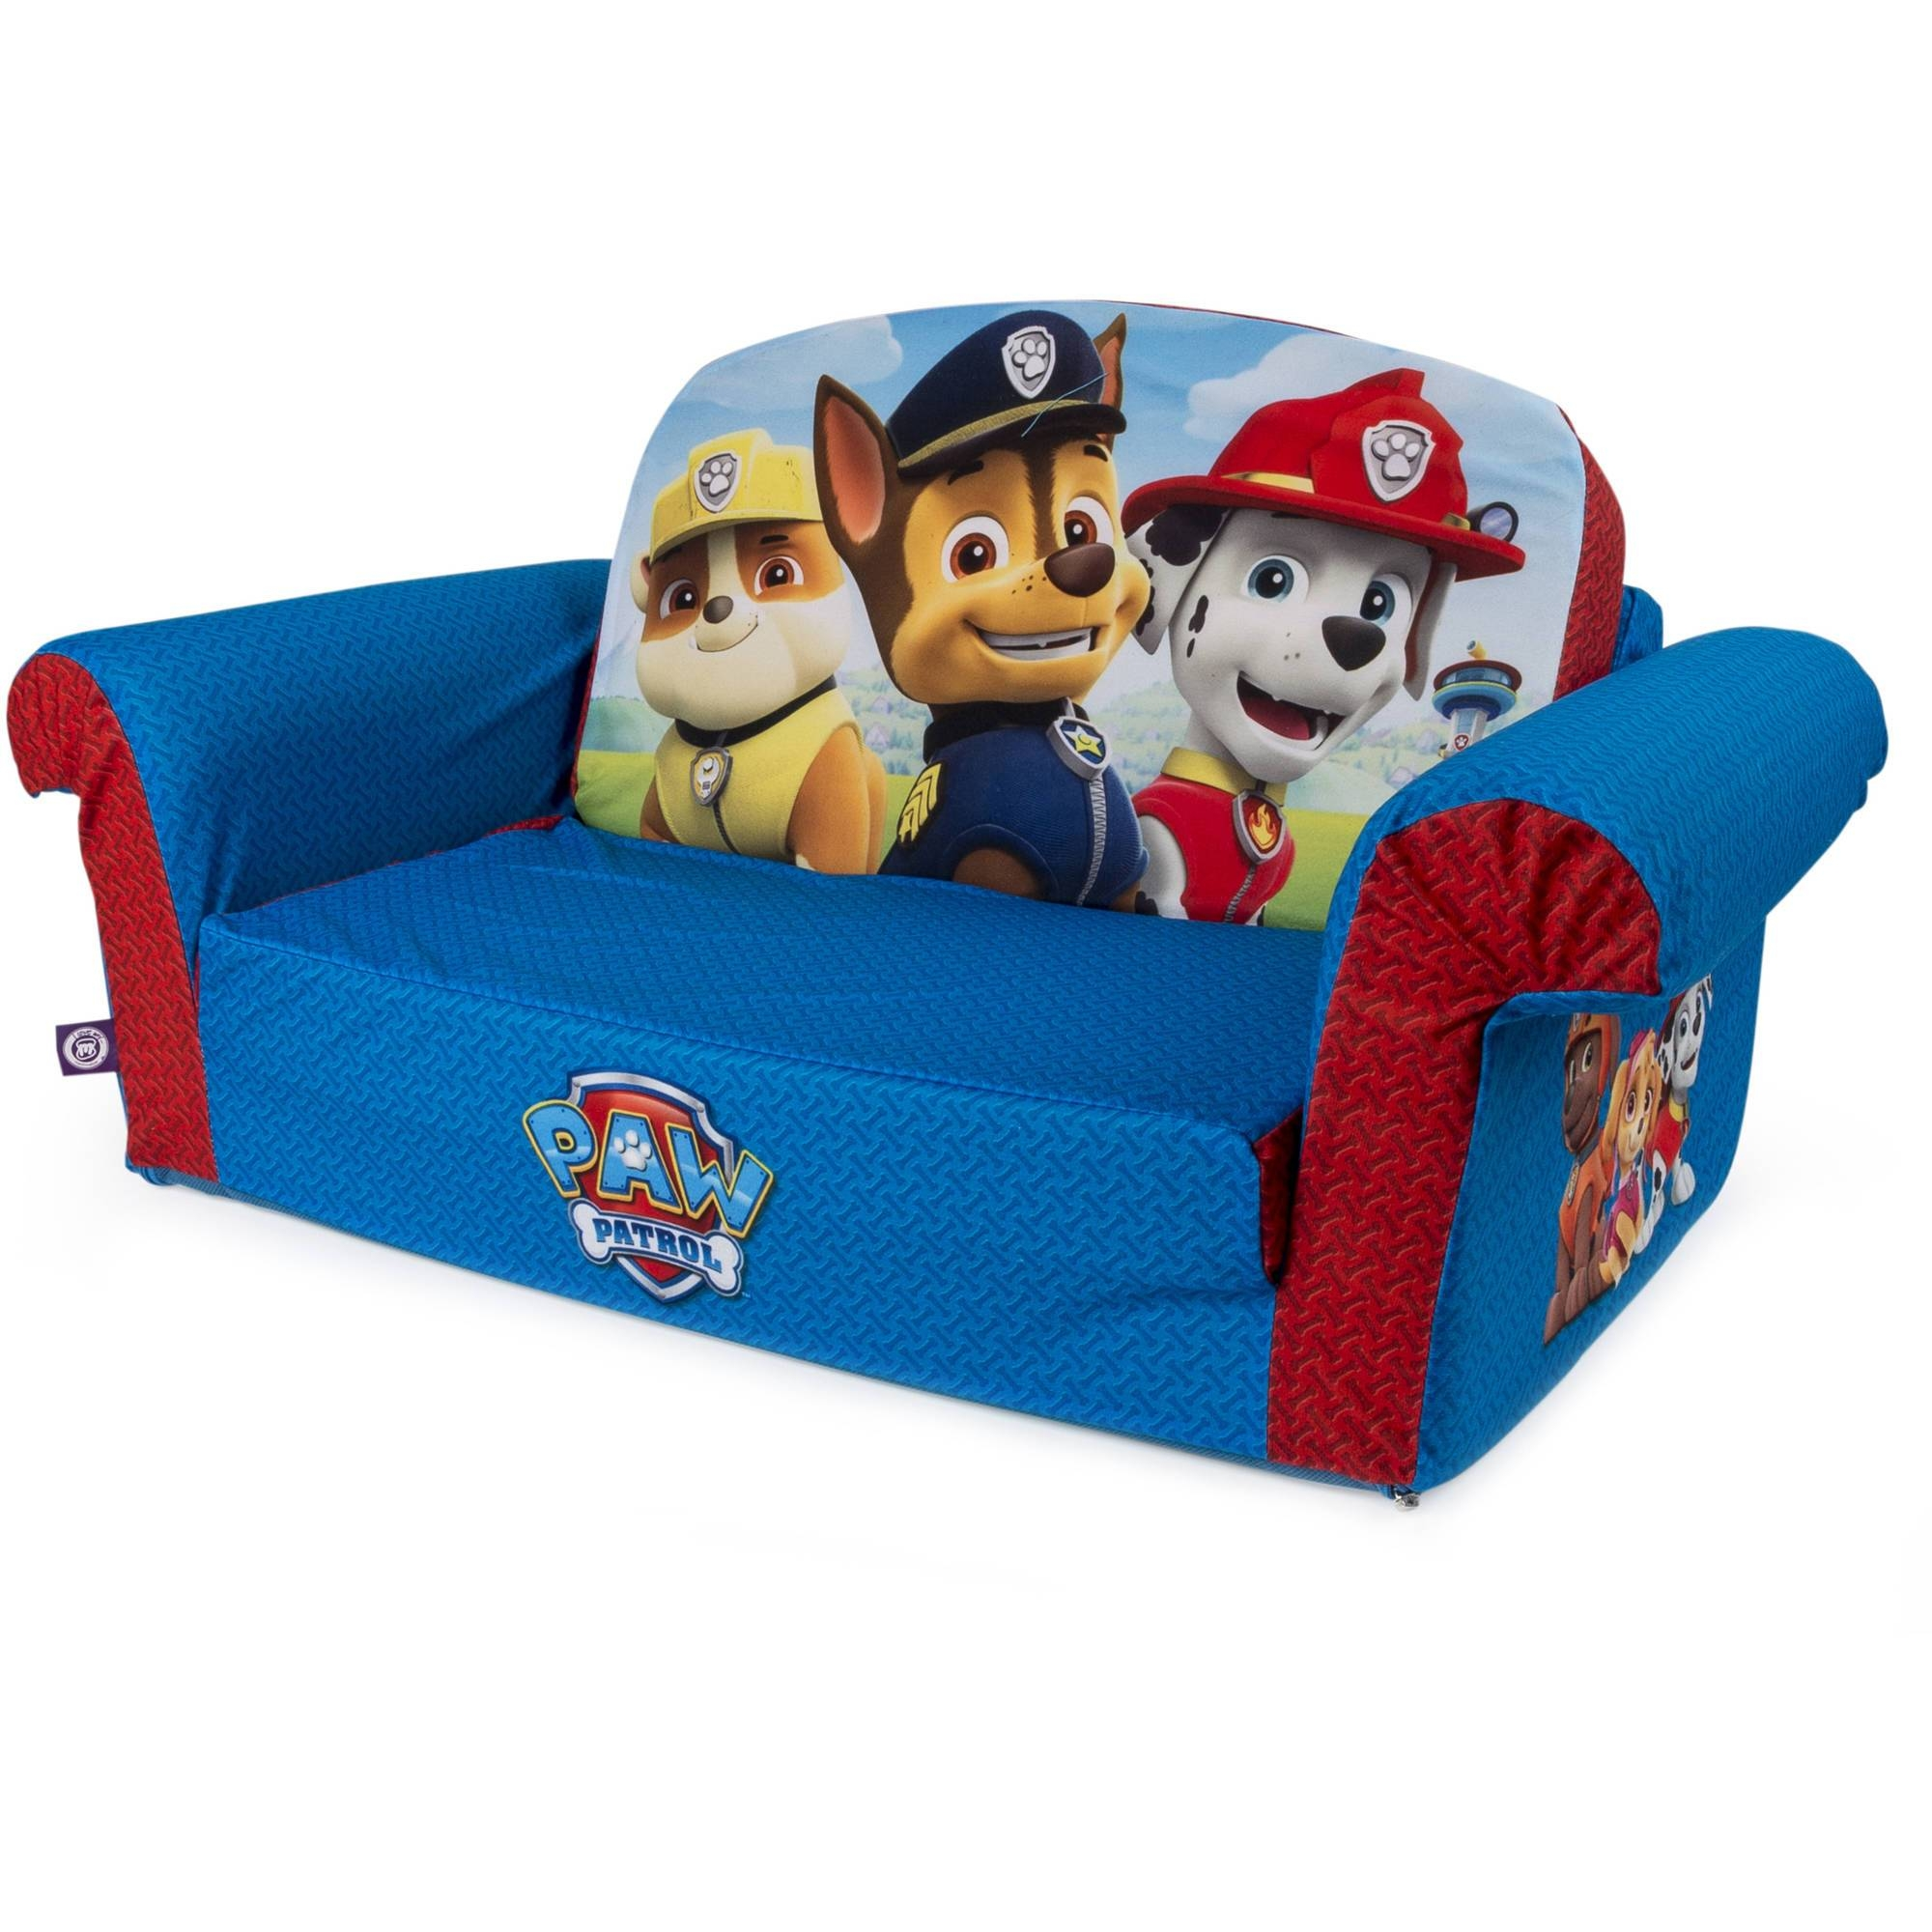 Marshmallow Furniture, Children's 2 In 1 Flip Open Foam Sofa in Kid Flip Open Sofa Beds (Image 9 of 15)